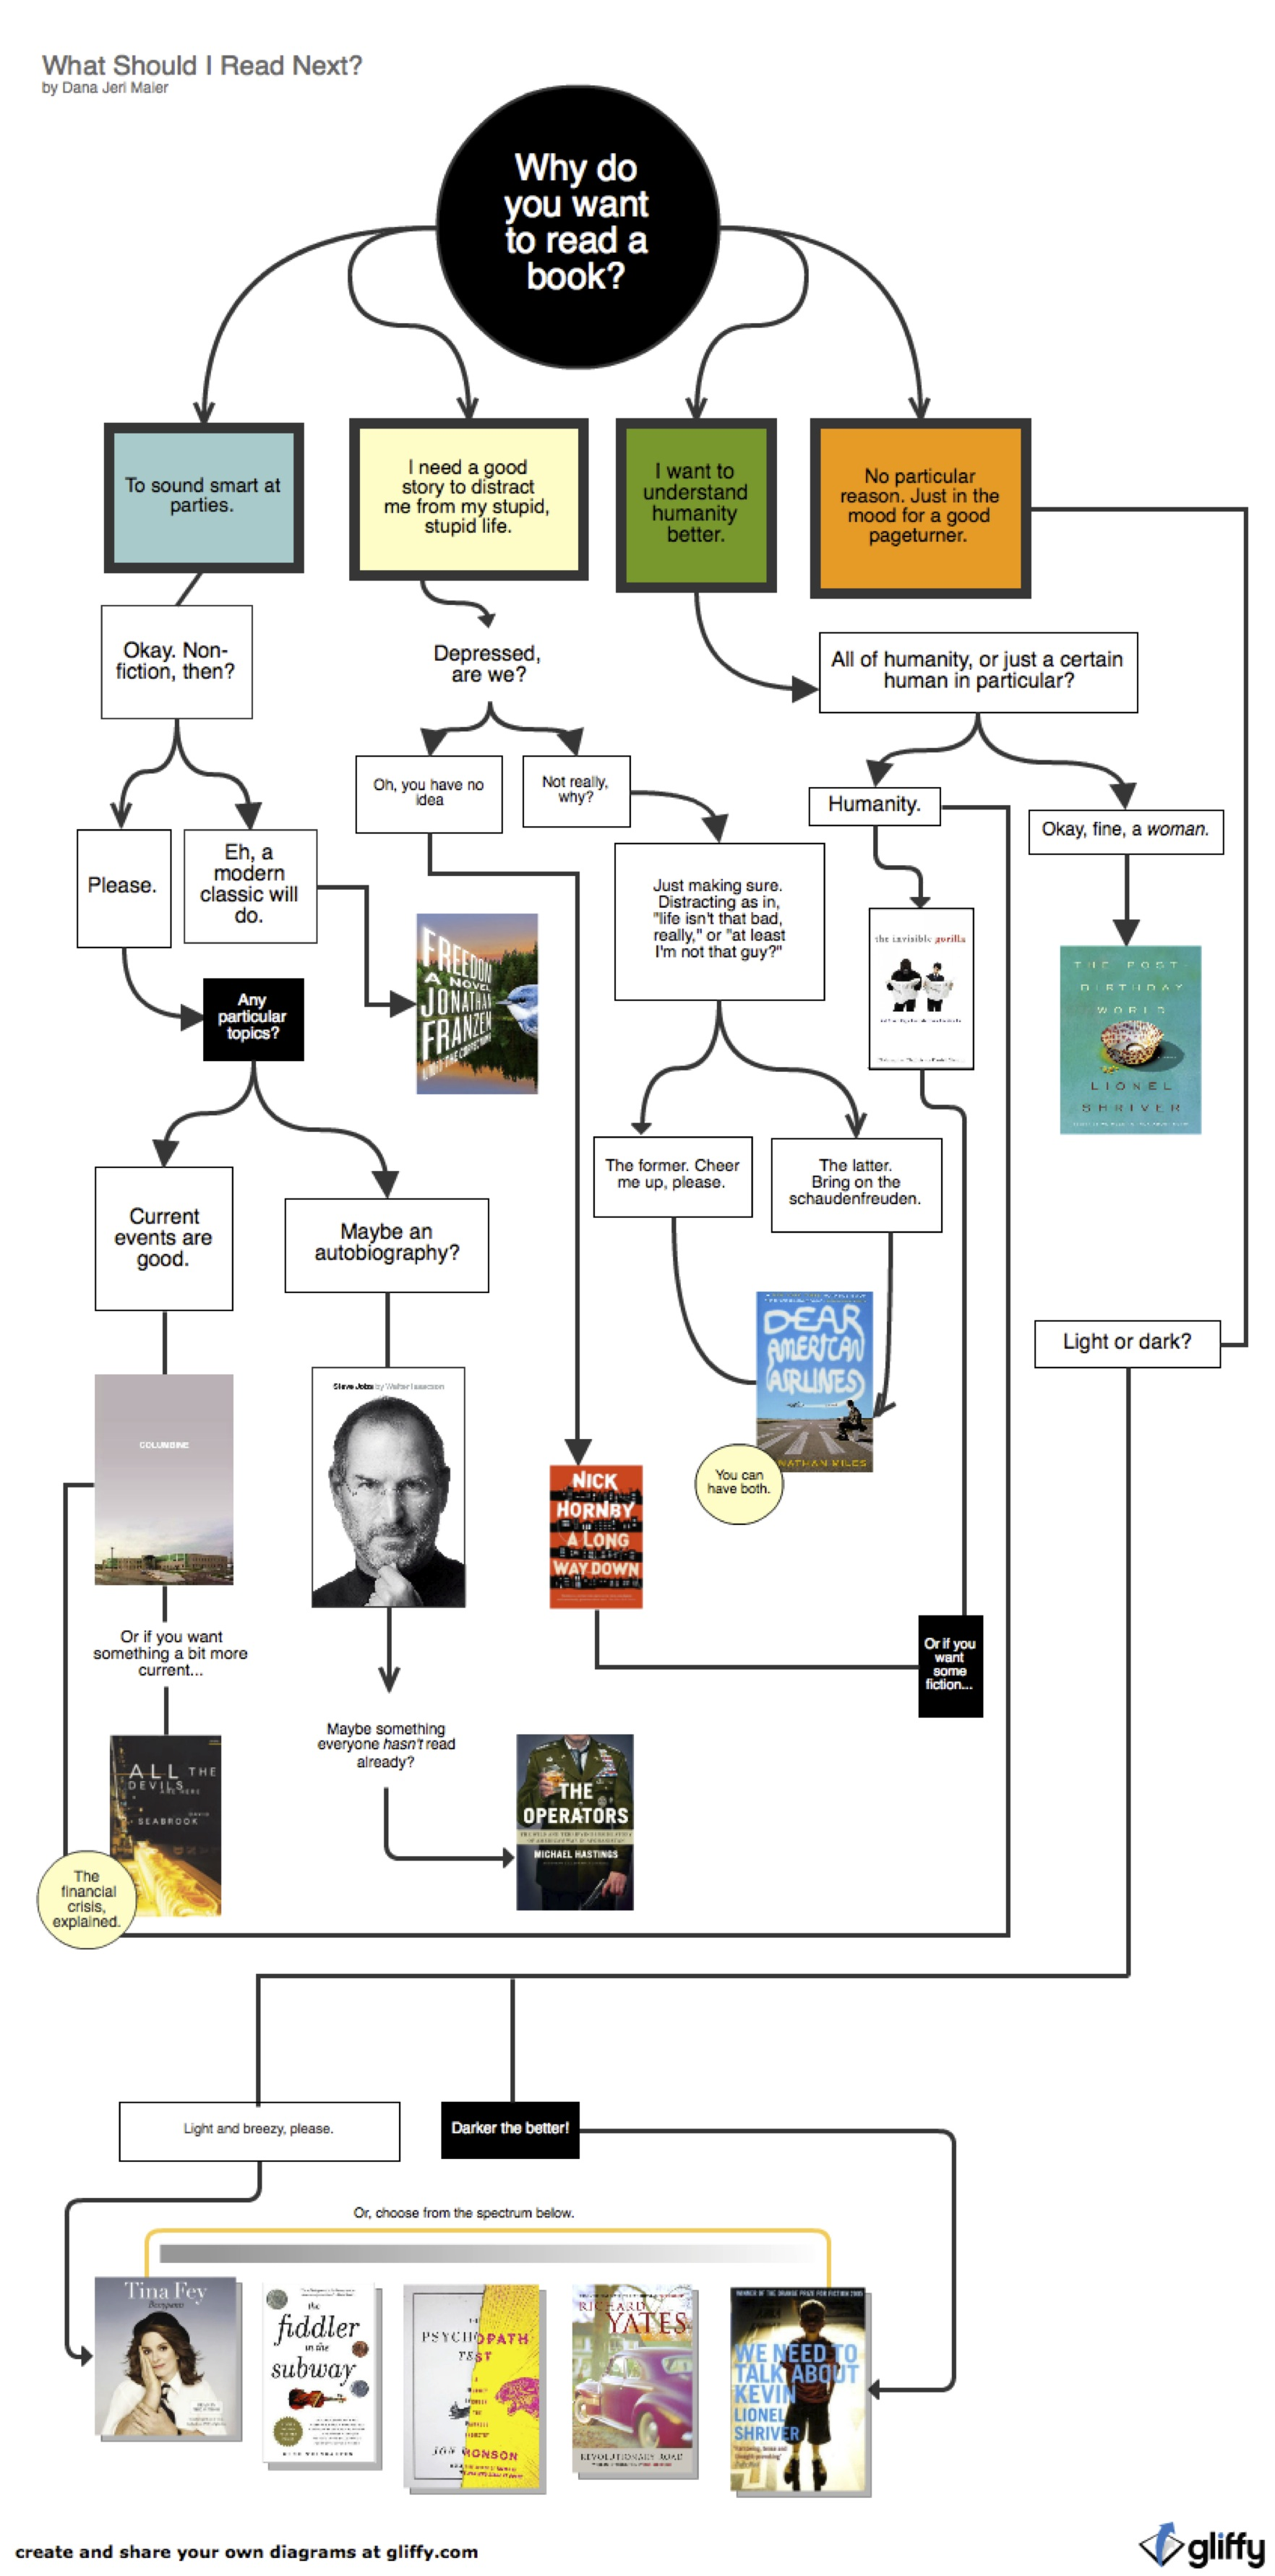 What Should I Do With My Soil: What Should I Read Next? [INFOGRAPHIC]